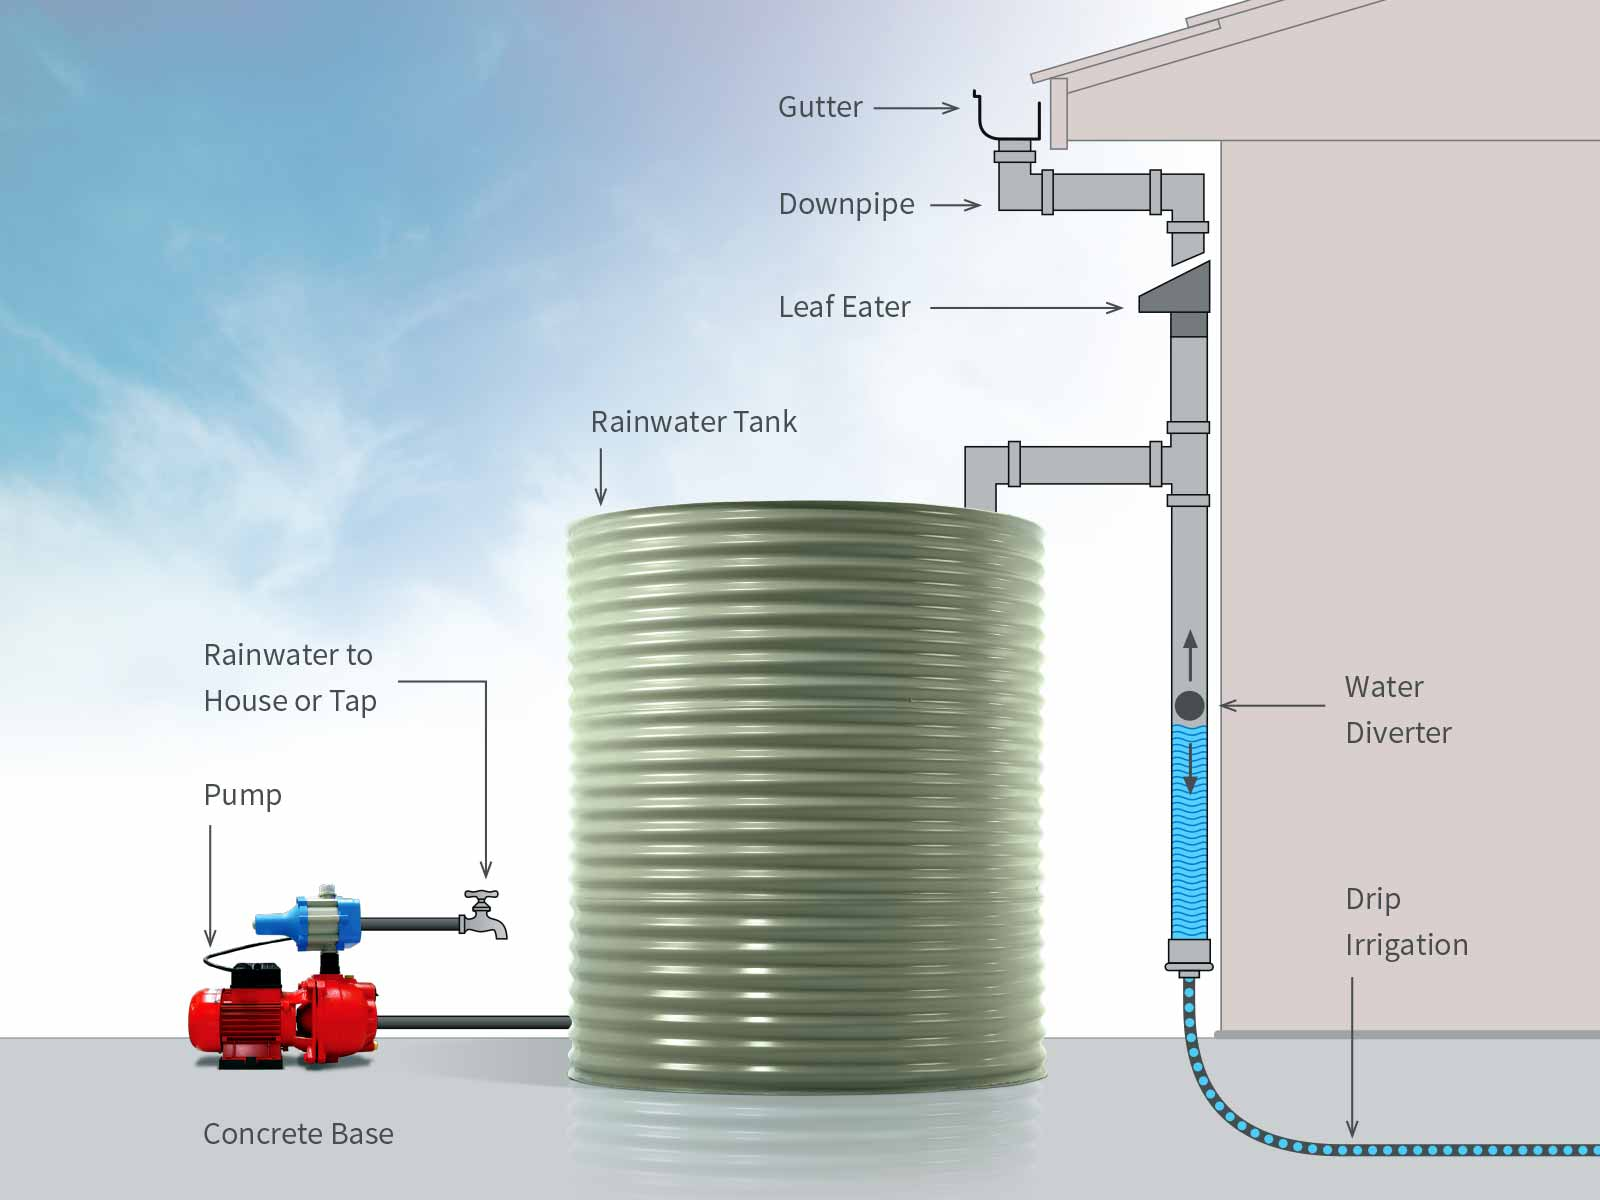 rainwater-tanks-water-supply-modular-home.jpg